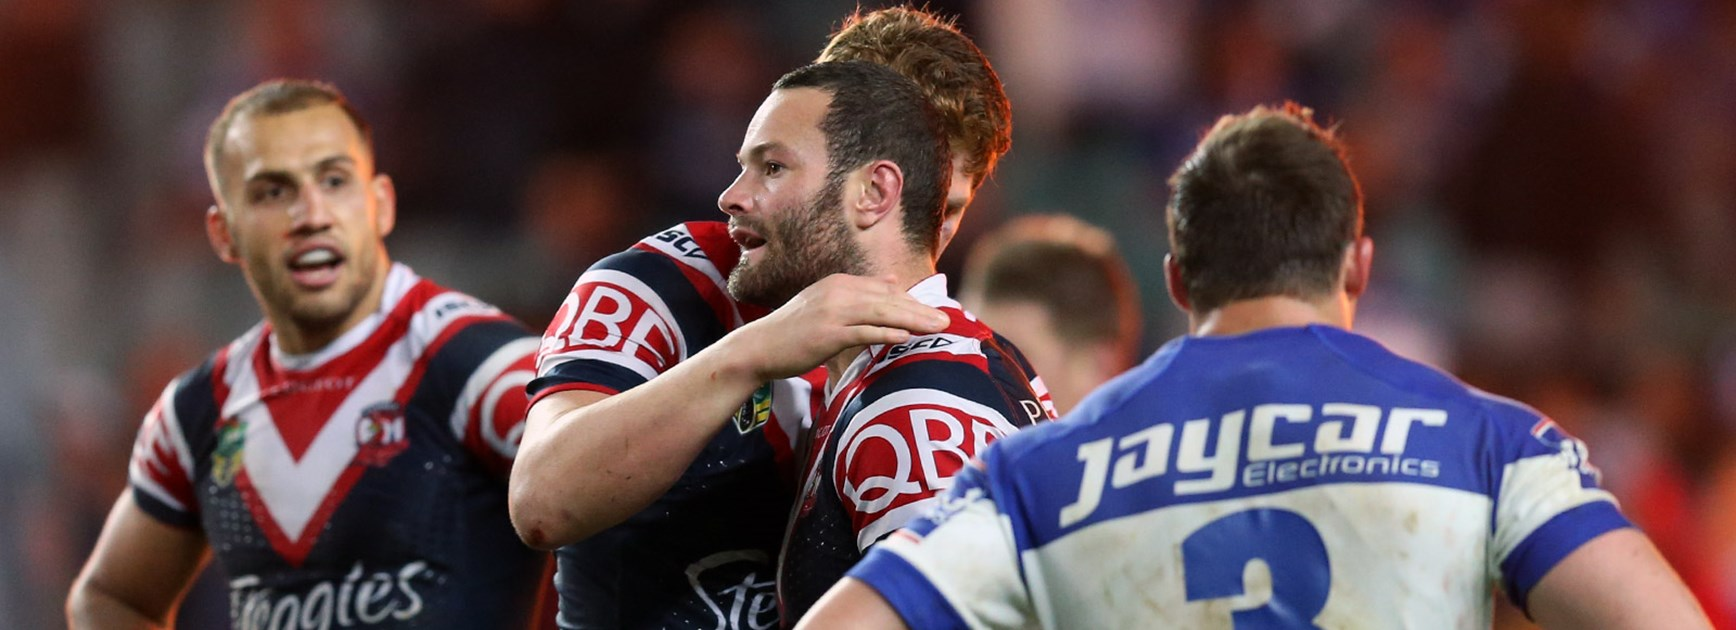 Boyd Cordner scored a try in the Roosters' semi-final win over the Bulldogs.